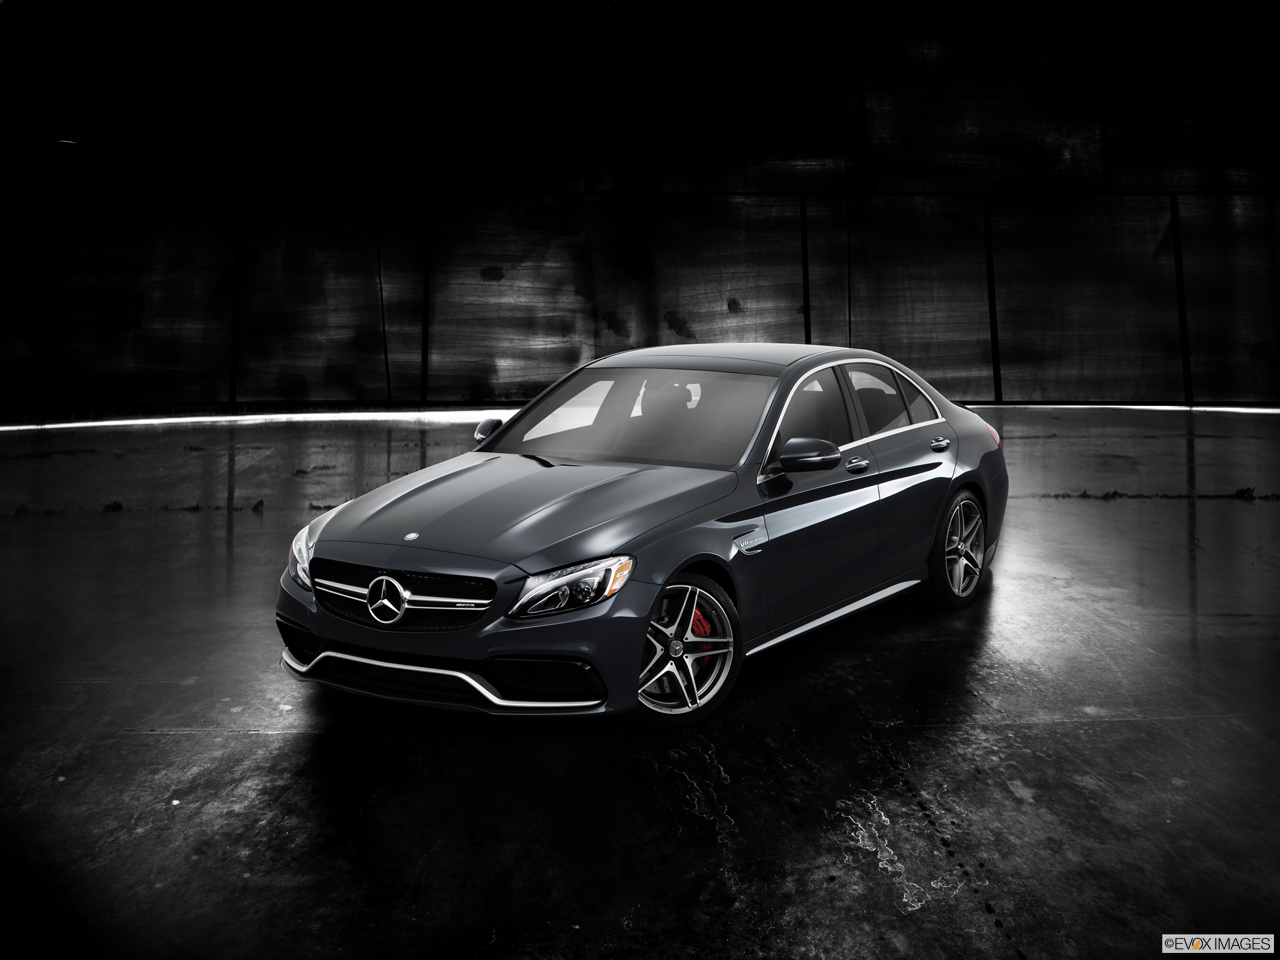 Car pictures list for mercedes benz c class 2016 c 63 amg for Wagner motors bmw shrewsbury